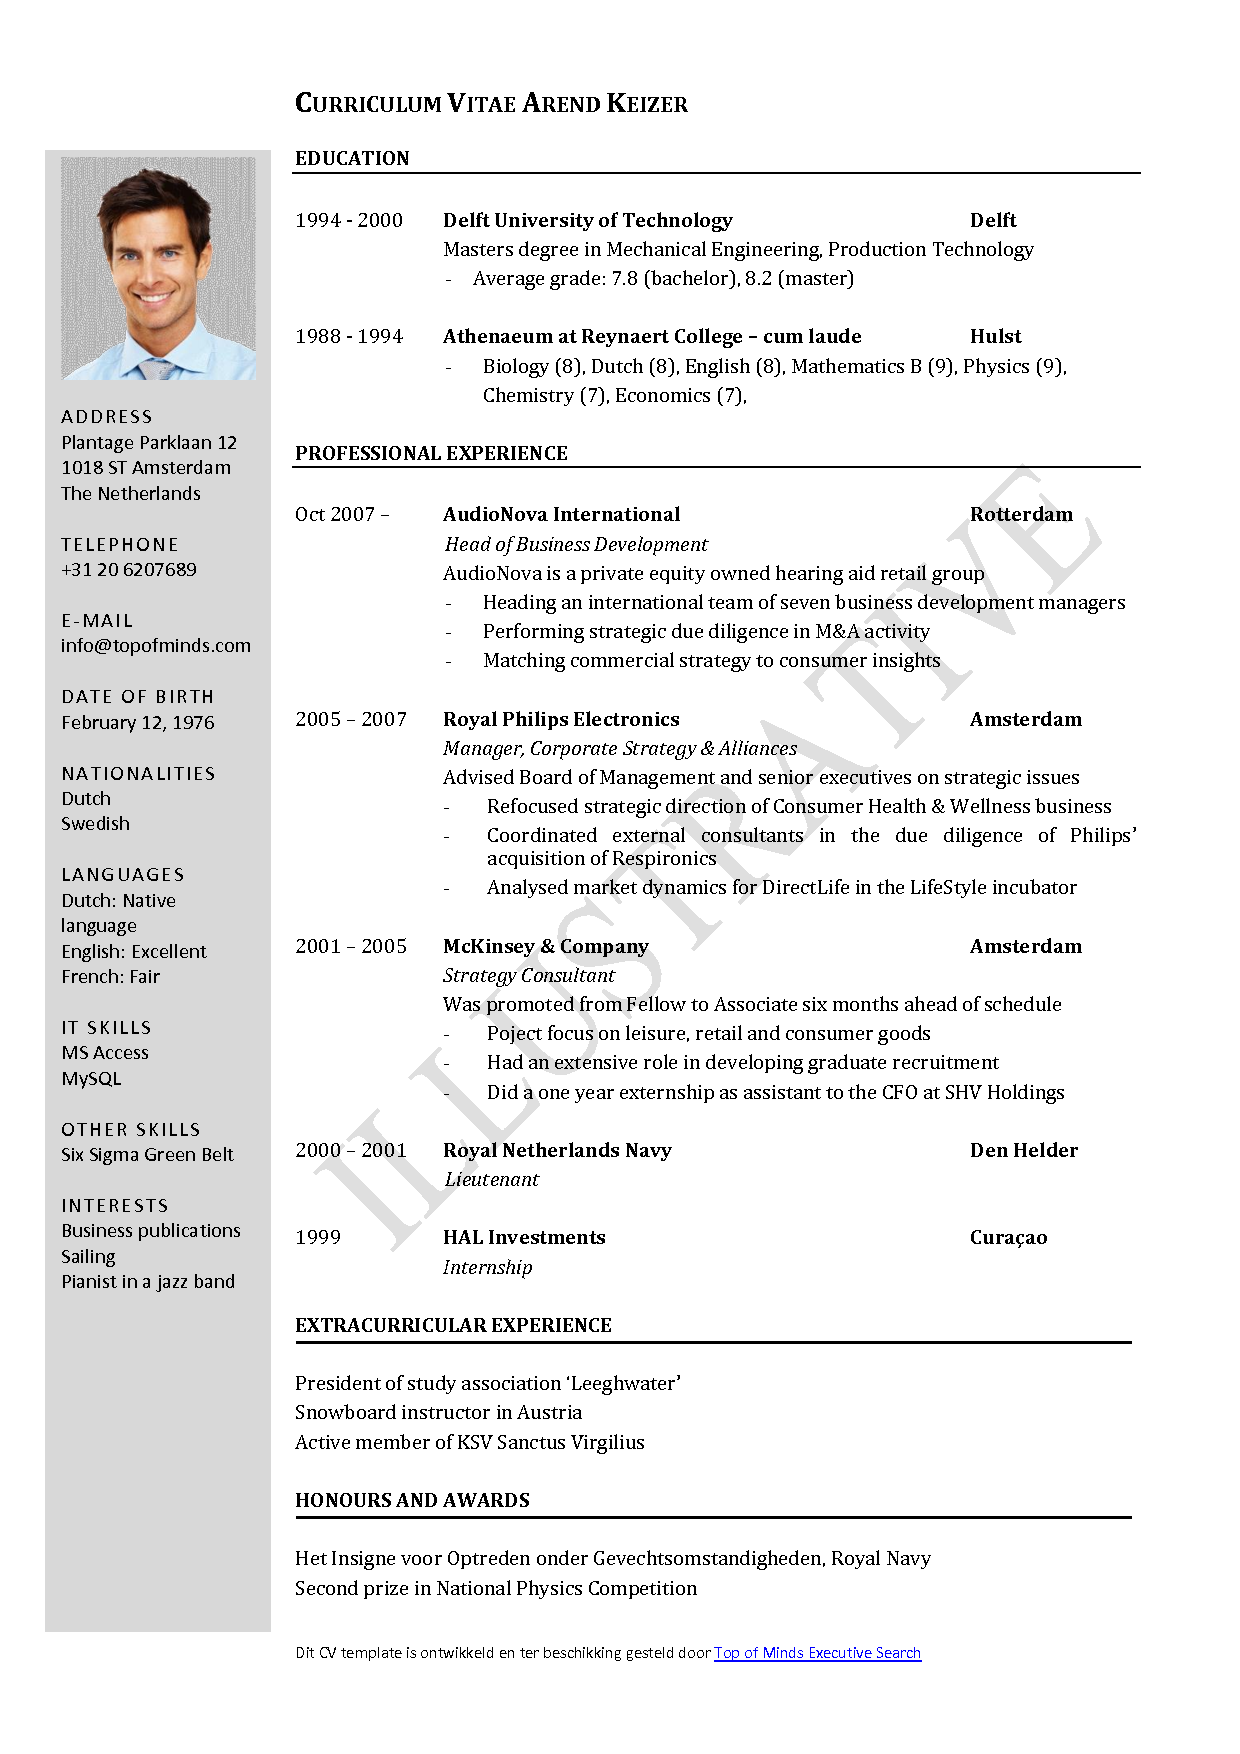 Template For Curriculum Vitae Free Curriculum Vitae Template Word  Download Cv Template  Cv